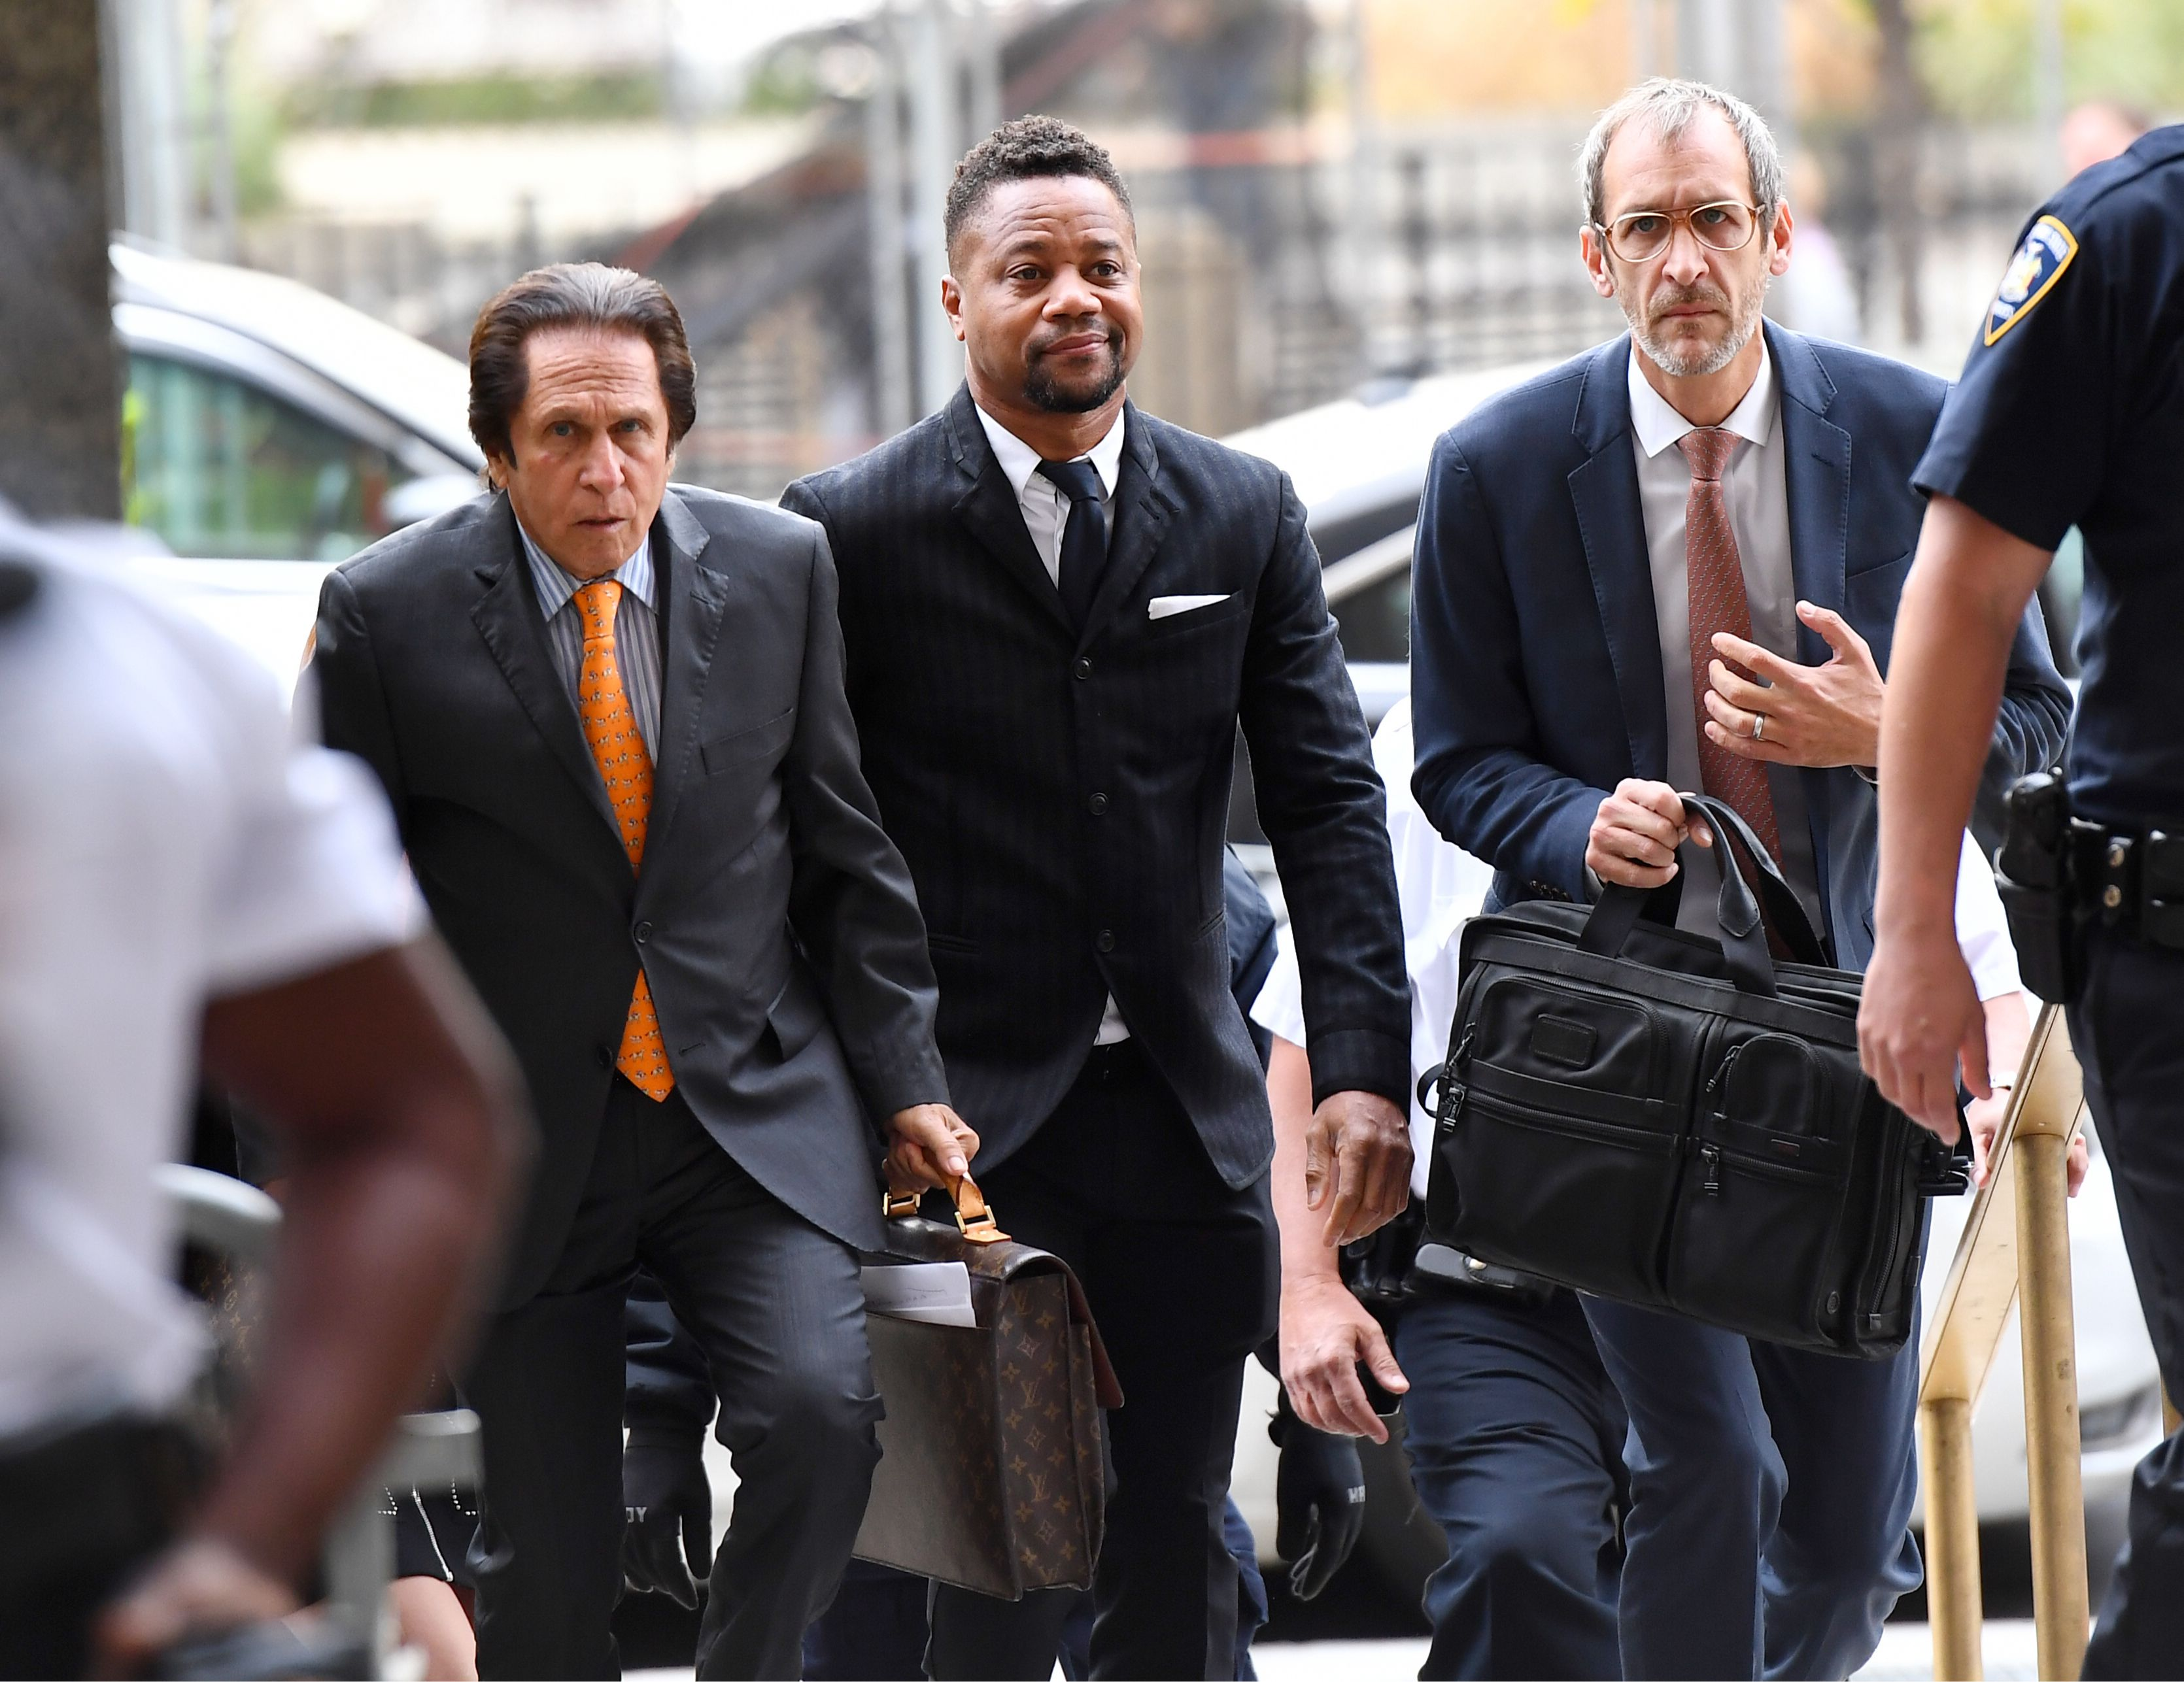 Prosecutors say 30 women have come forward with groping accusations against Cuba Gooding Jr.